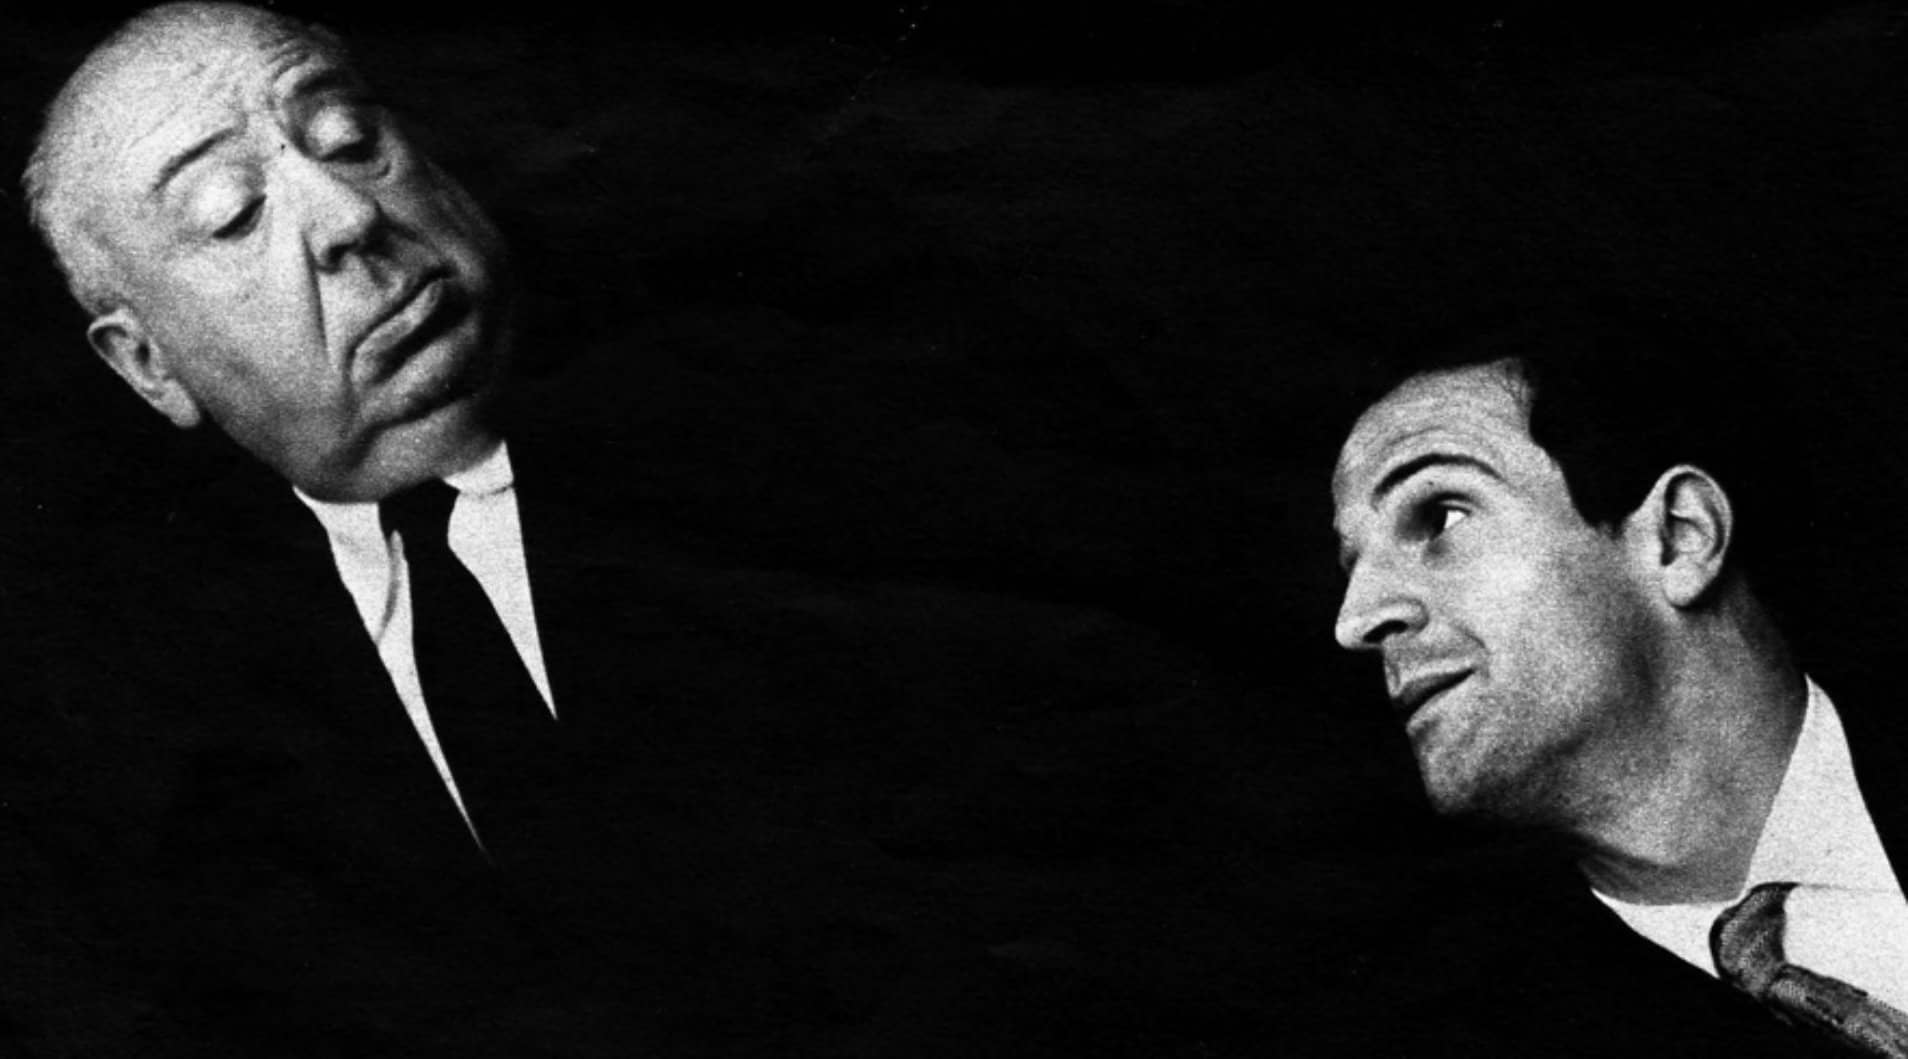 Alfred Hitchcock and François Truffaut in 1962